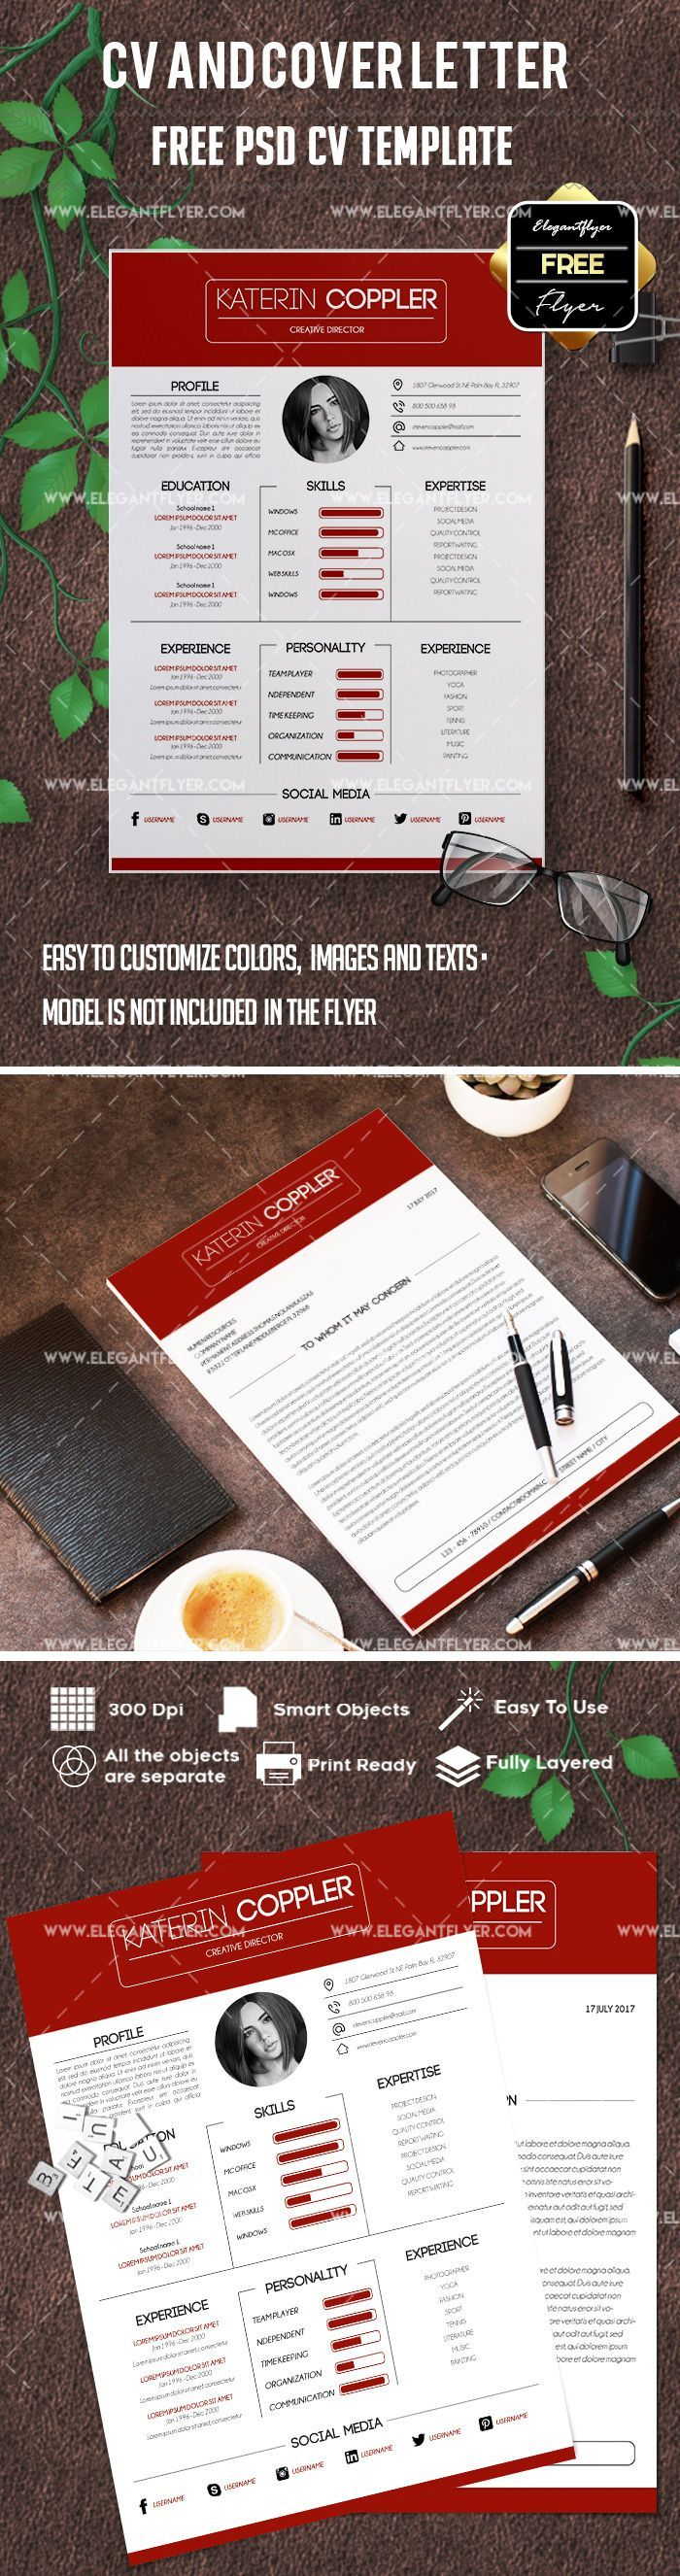 operations supervisor resume%0A https   www elegantflyer com freeresumetemplates